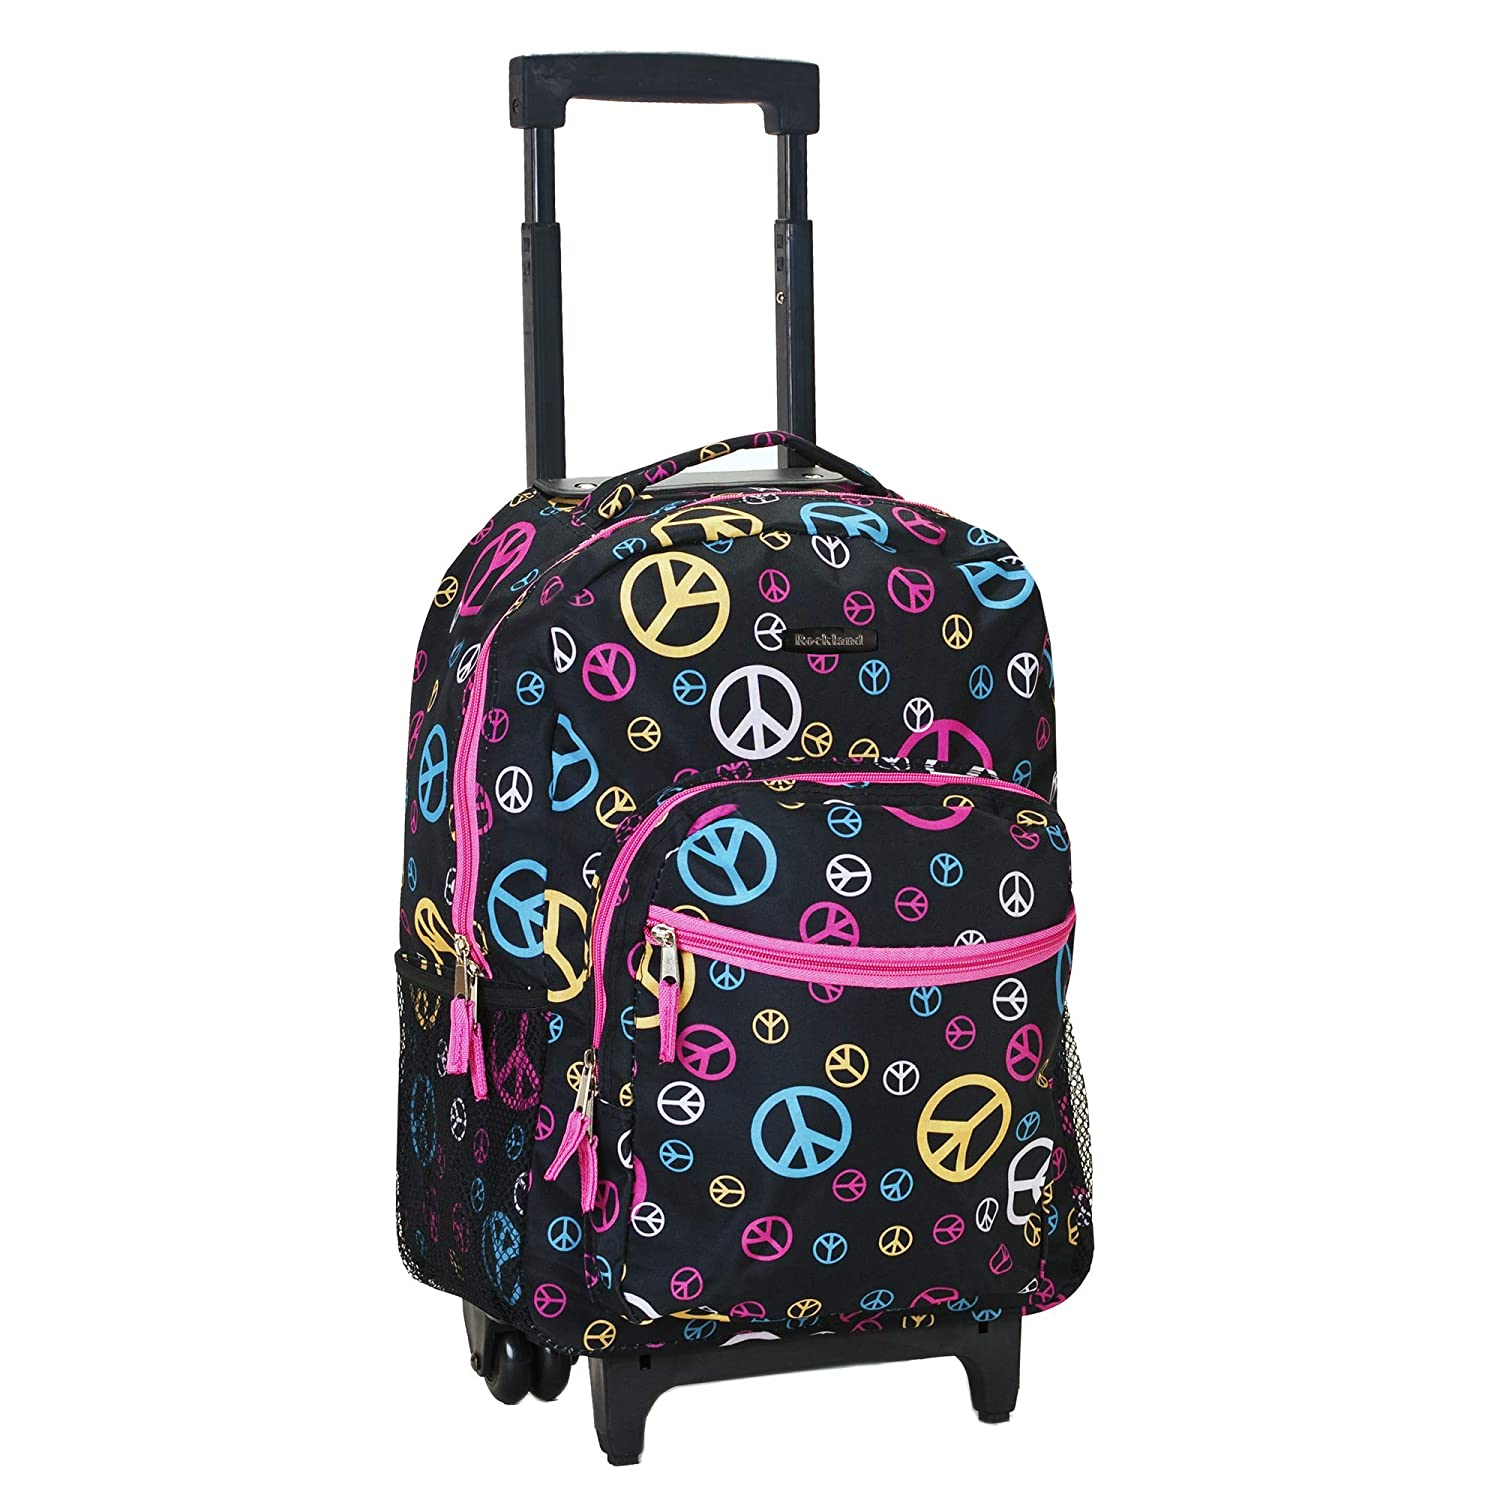 777168816987 Rockland Luggage 17 Inch Rolling Backpack, Peace, Medium